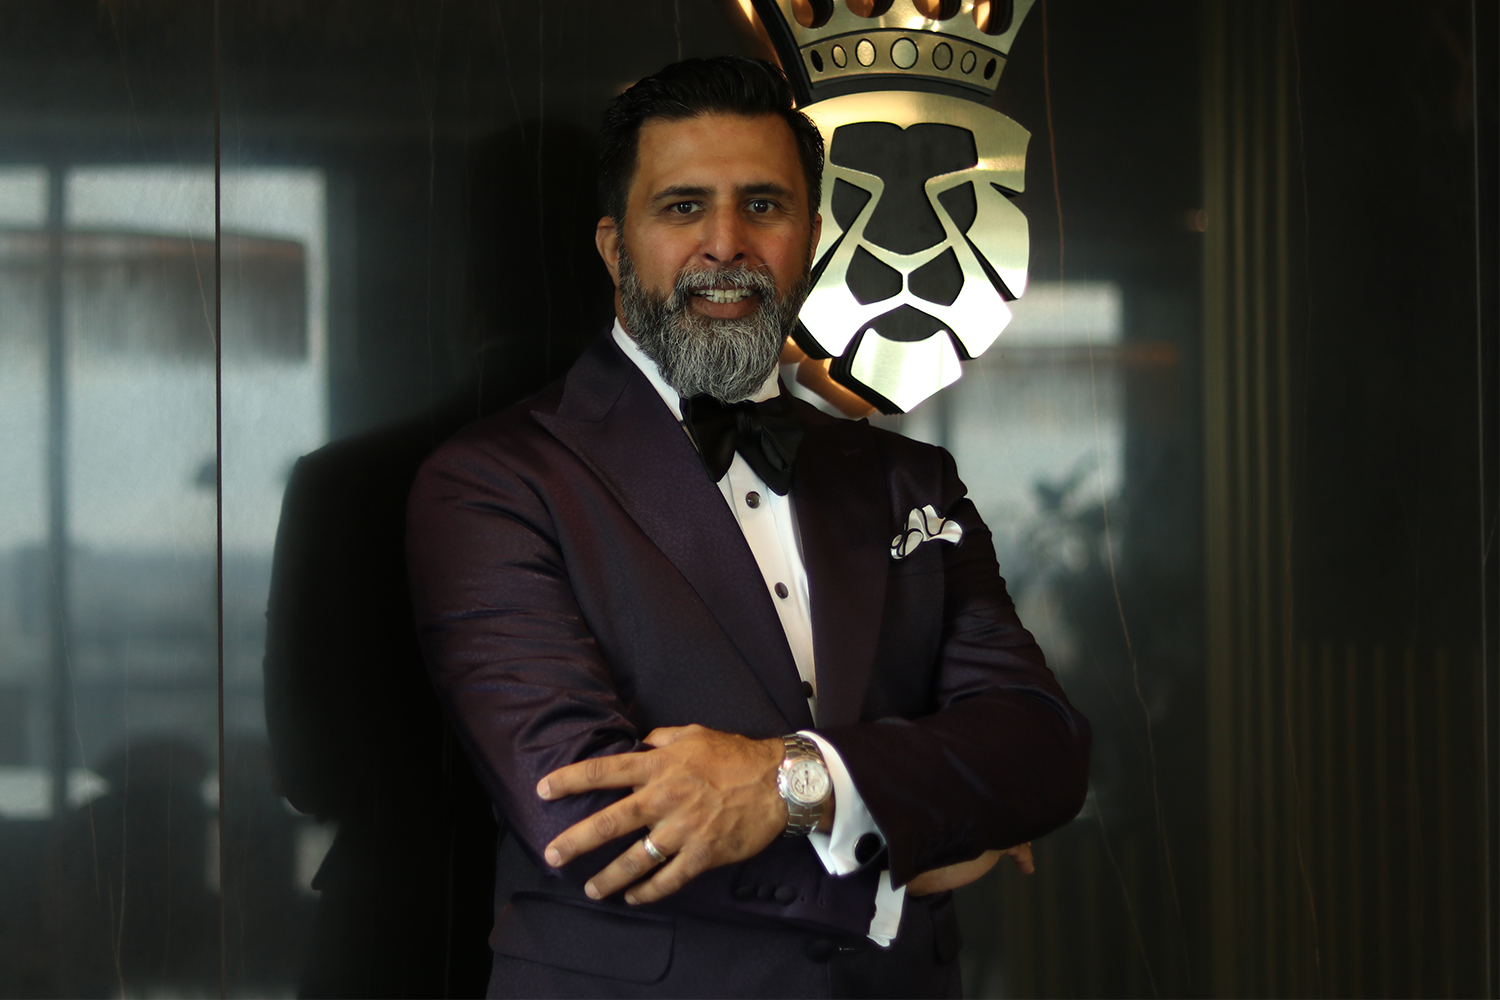 Aashif Jamani posing with his arms crossed at menswear boutique King & Bay